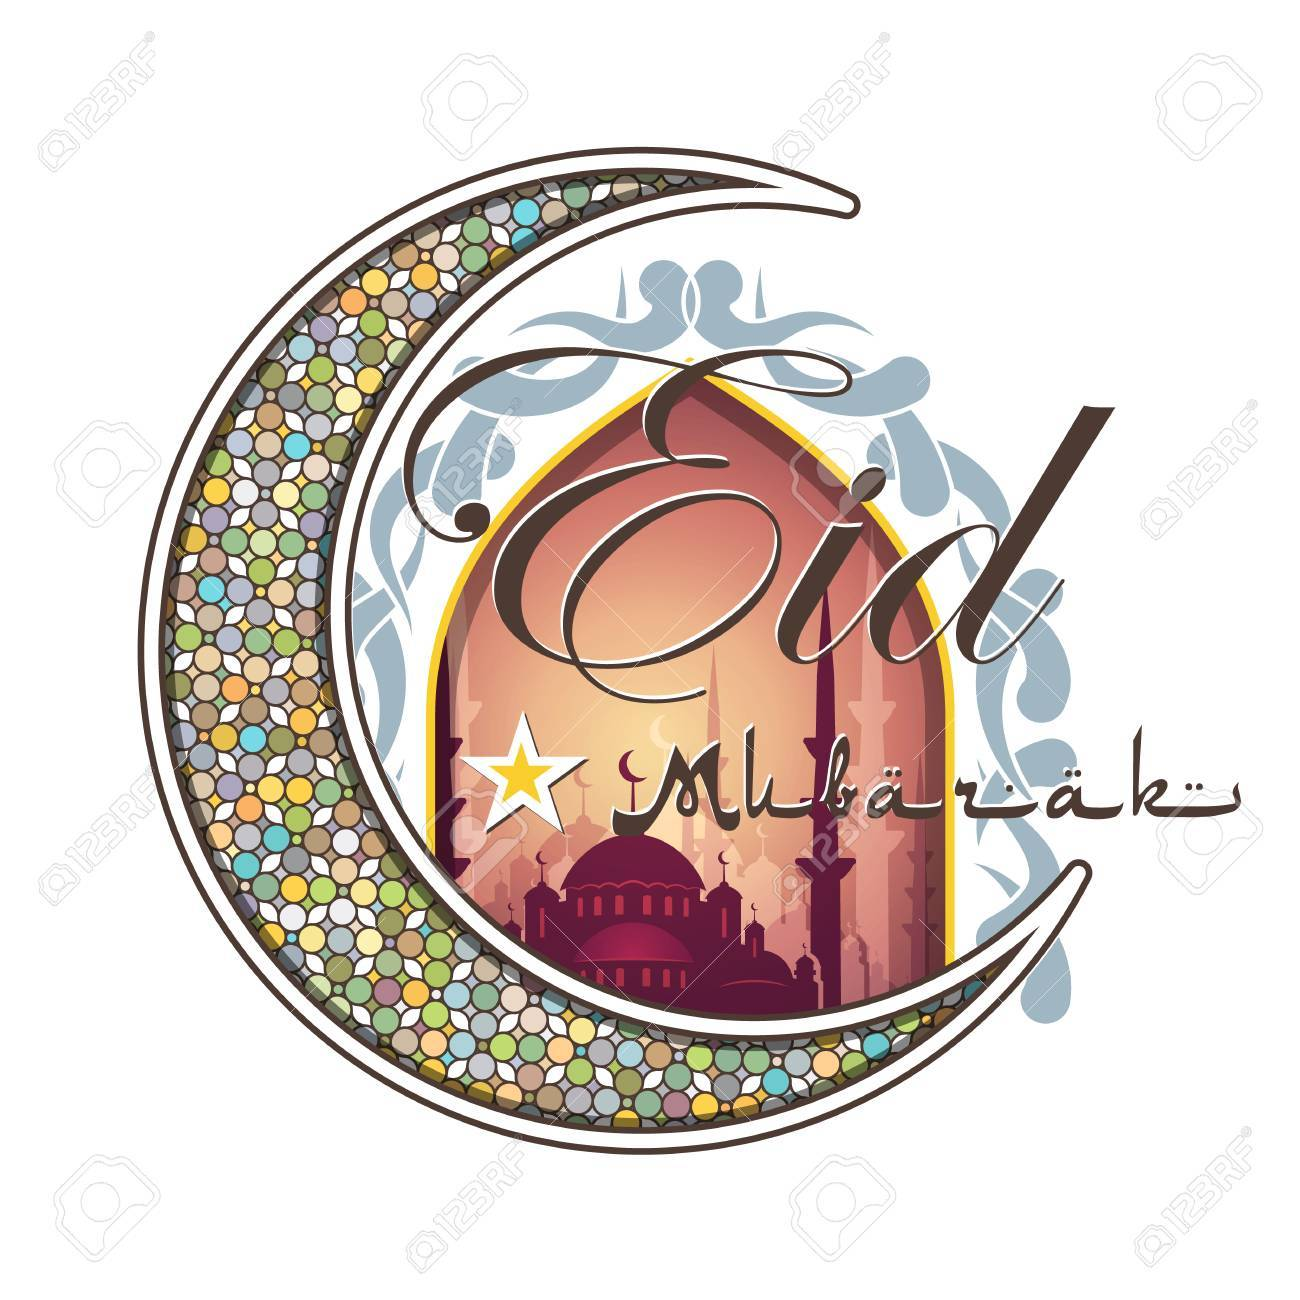 Most Inspiring Arabic Eid Al-Fitr Feast - 59282135-calligraphy-of-arabic-text-eid-al-fitr-feast-of-breaking-the-fast-holiday-greeting-card-in-retro-sty  Collection_968830 .jpg